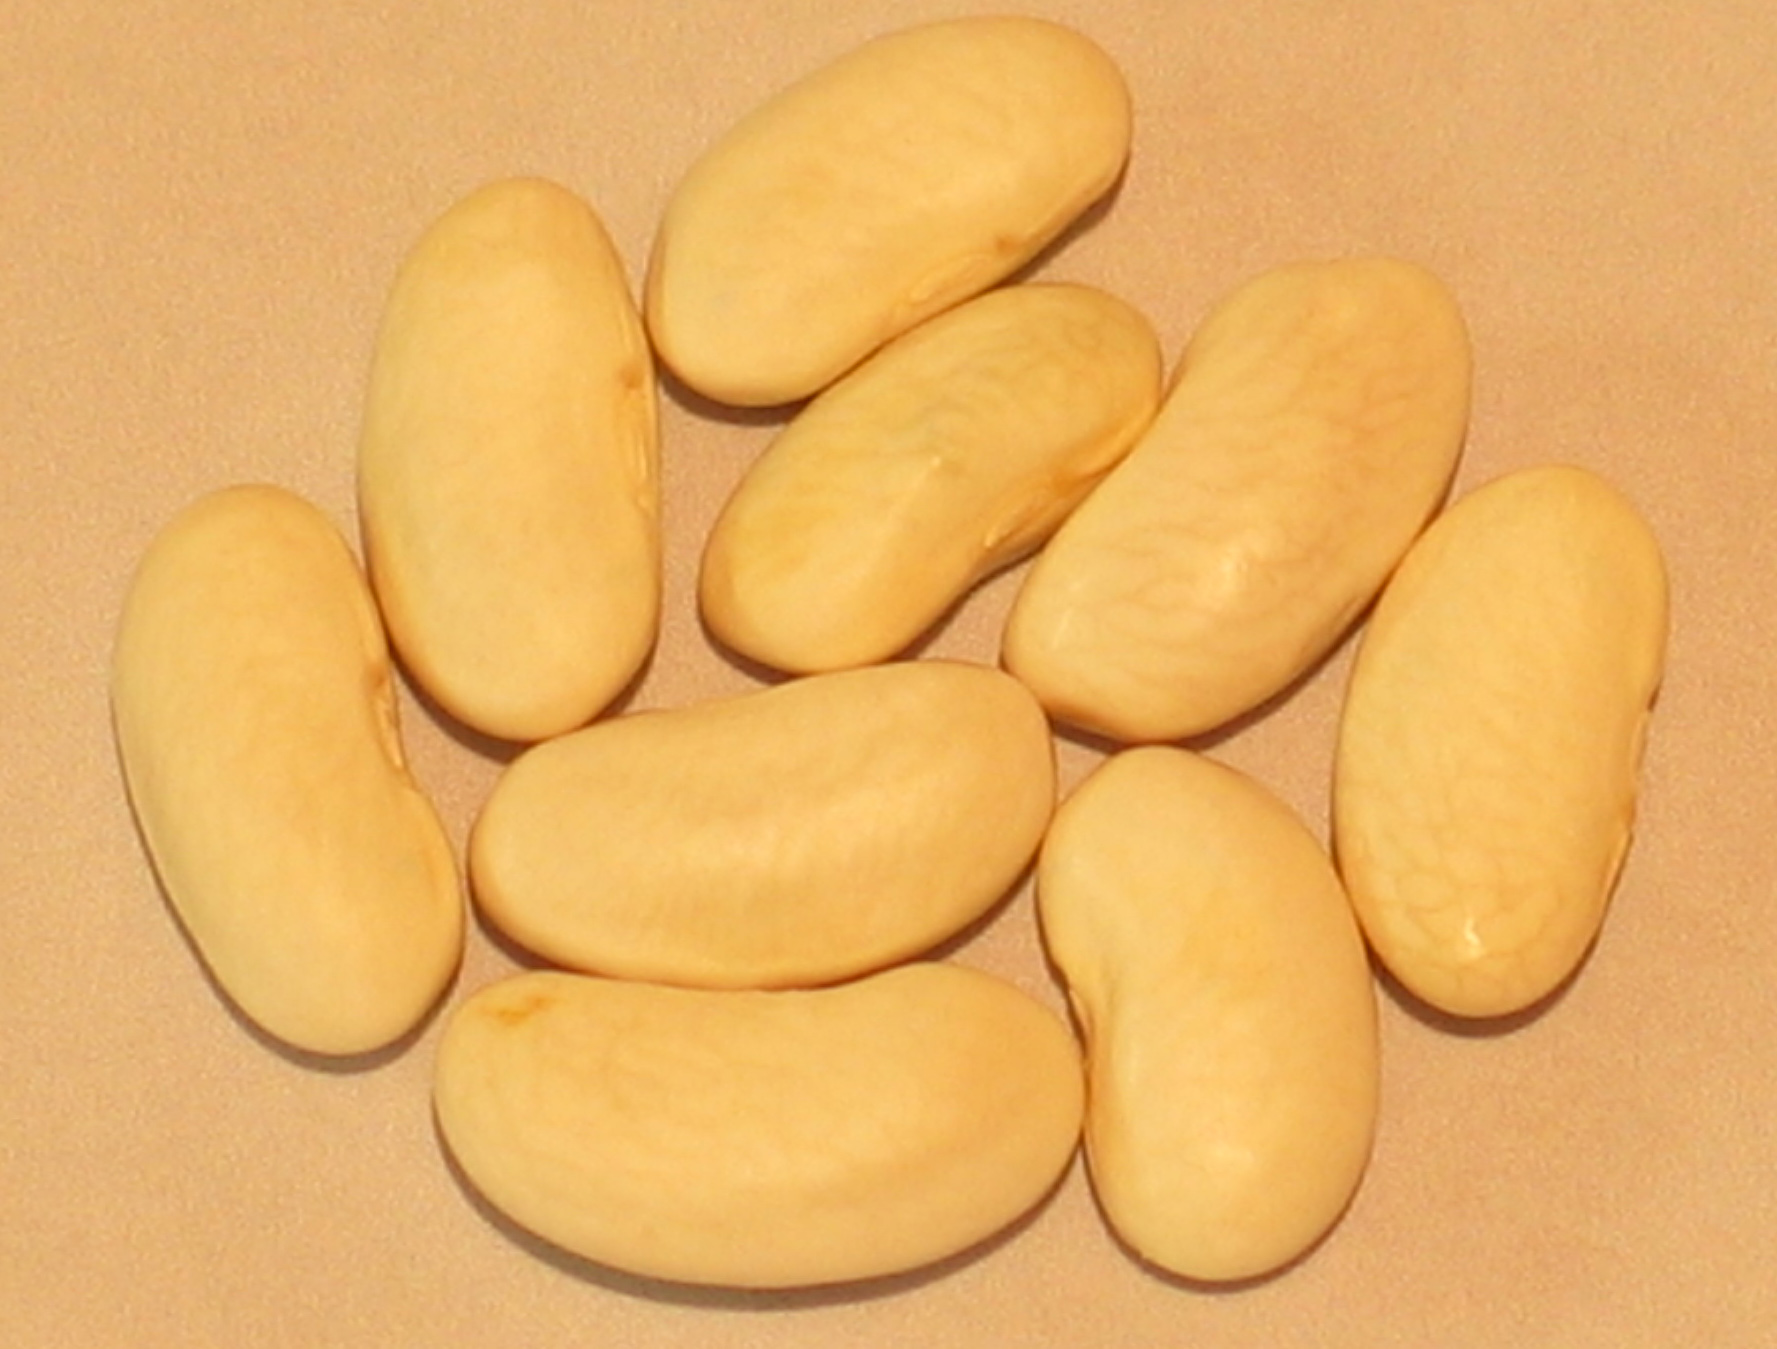 image of Kentucky Wonder White Seed beans